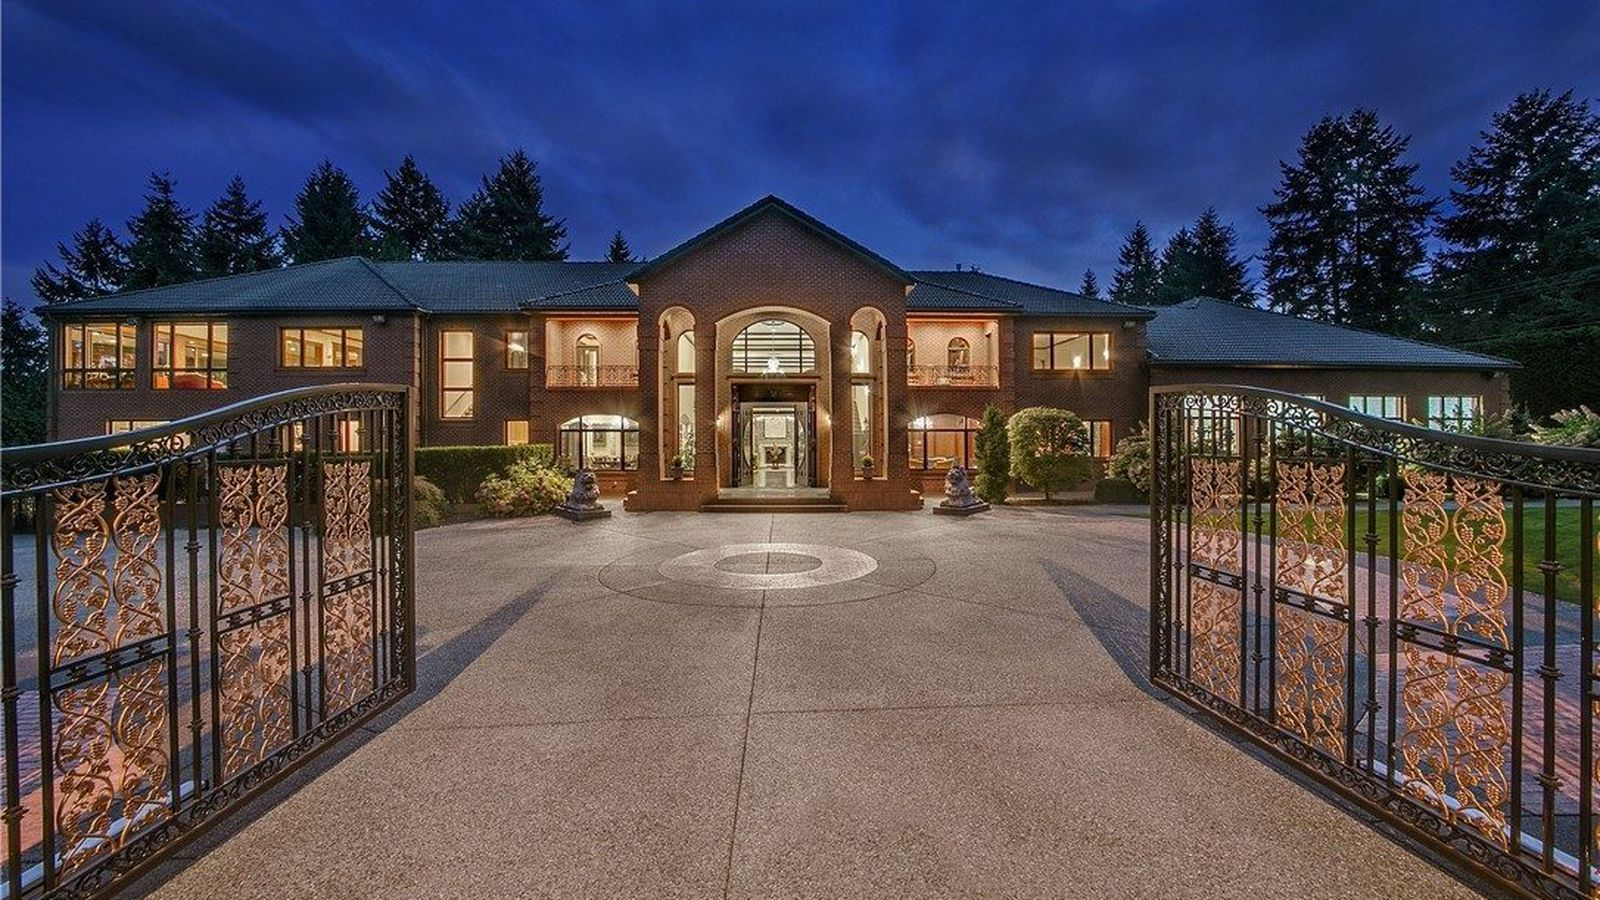 16 5m Bellevue Mansion The Height Of Puget Sound Luxury